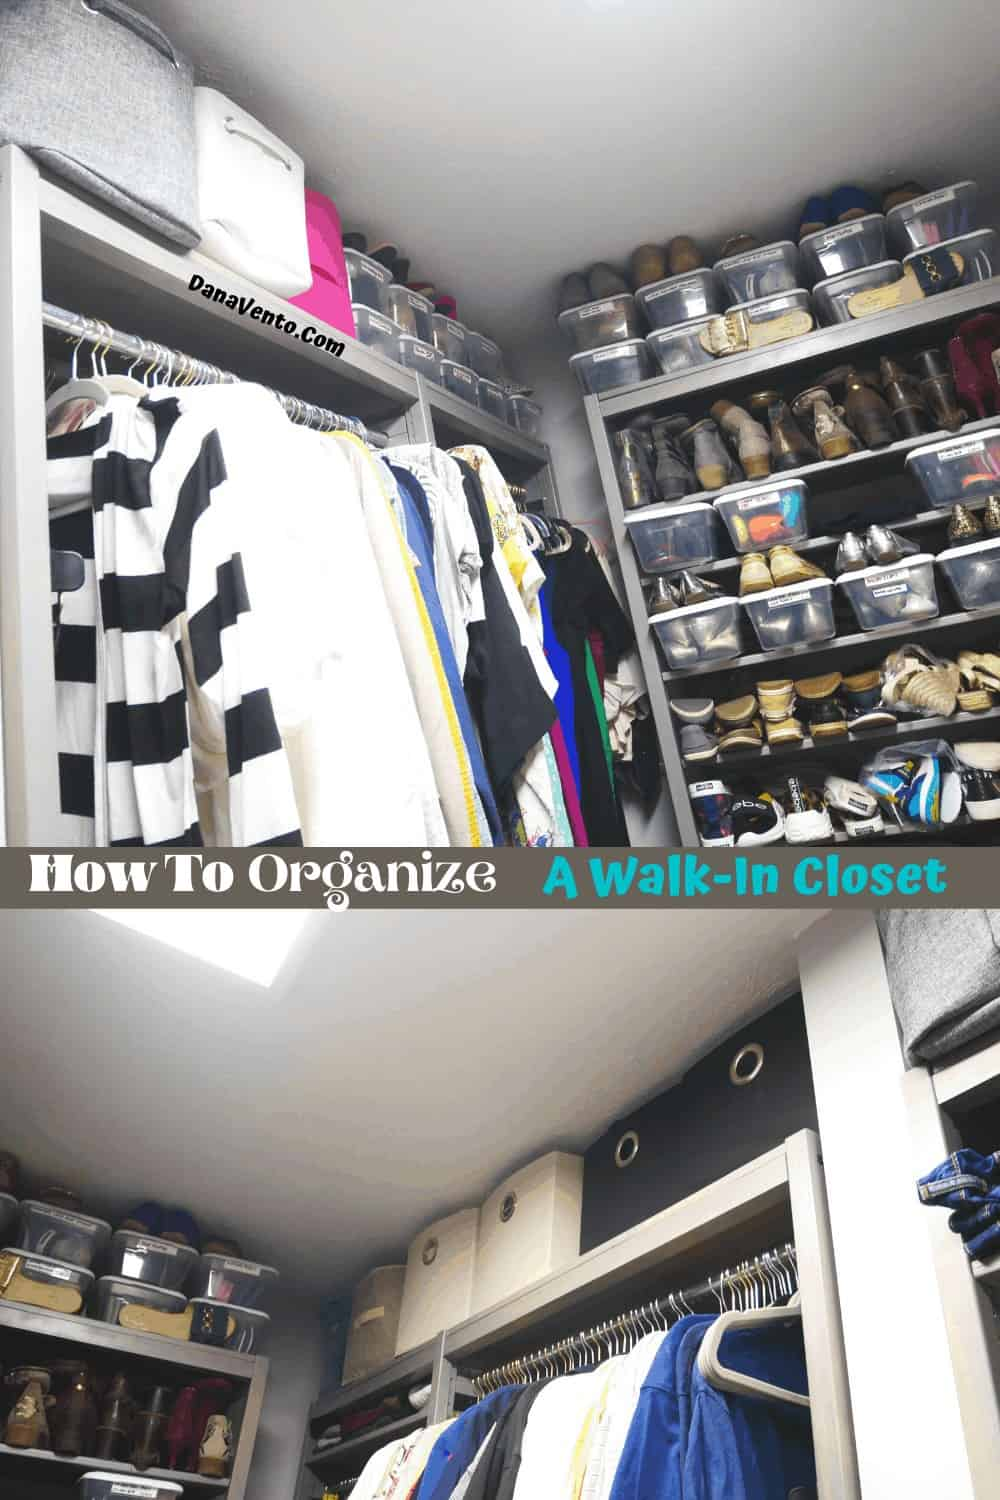 Organized open spaces in LUNDIA USA solid wood closet system using containers from Target